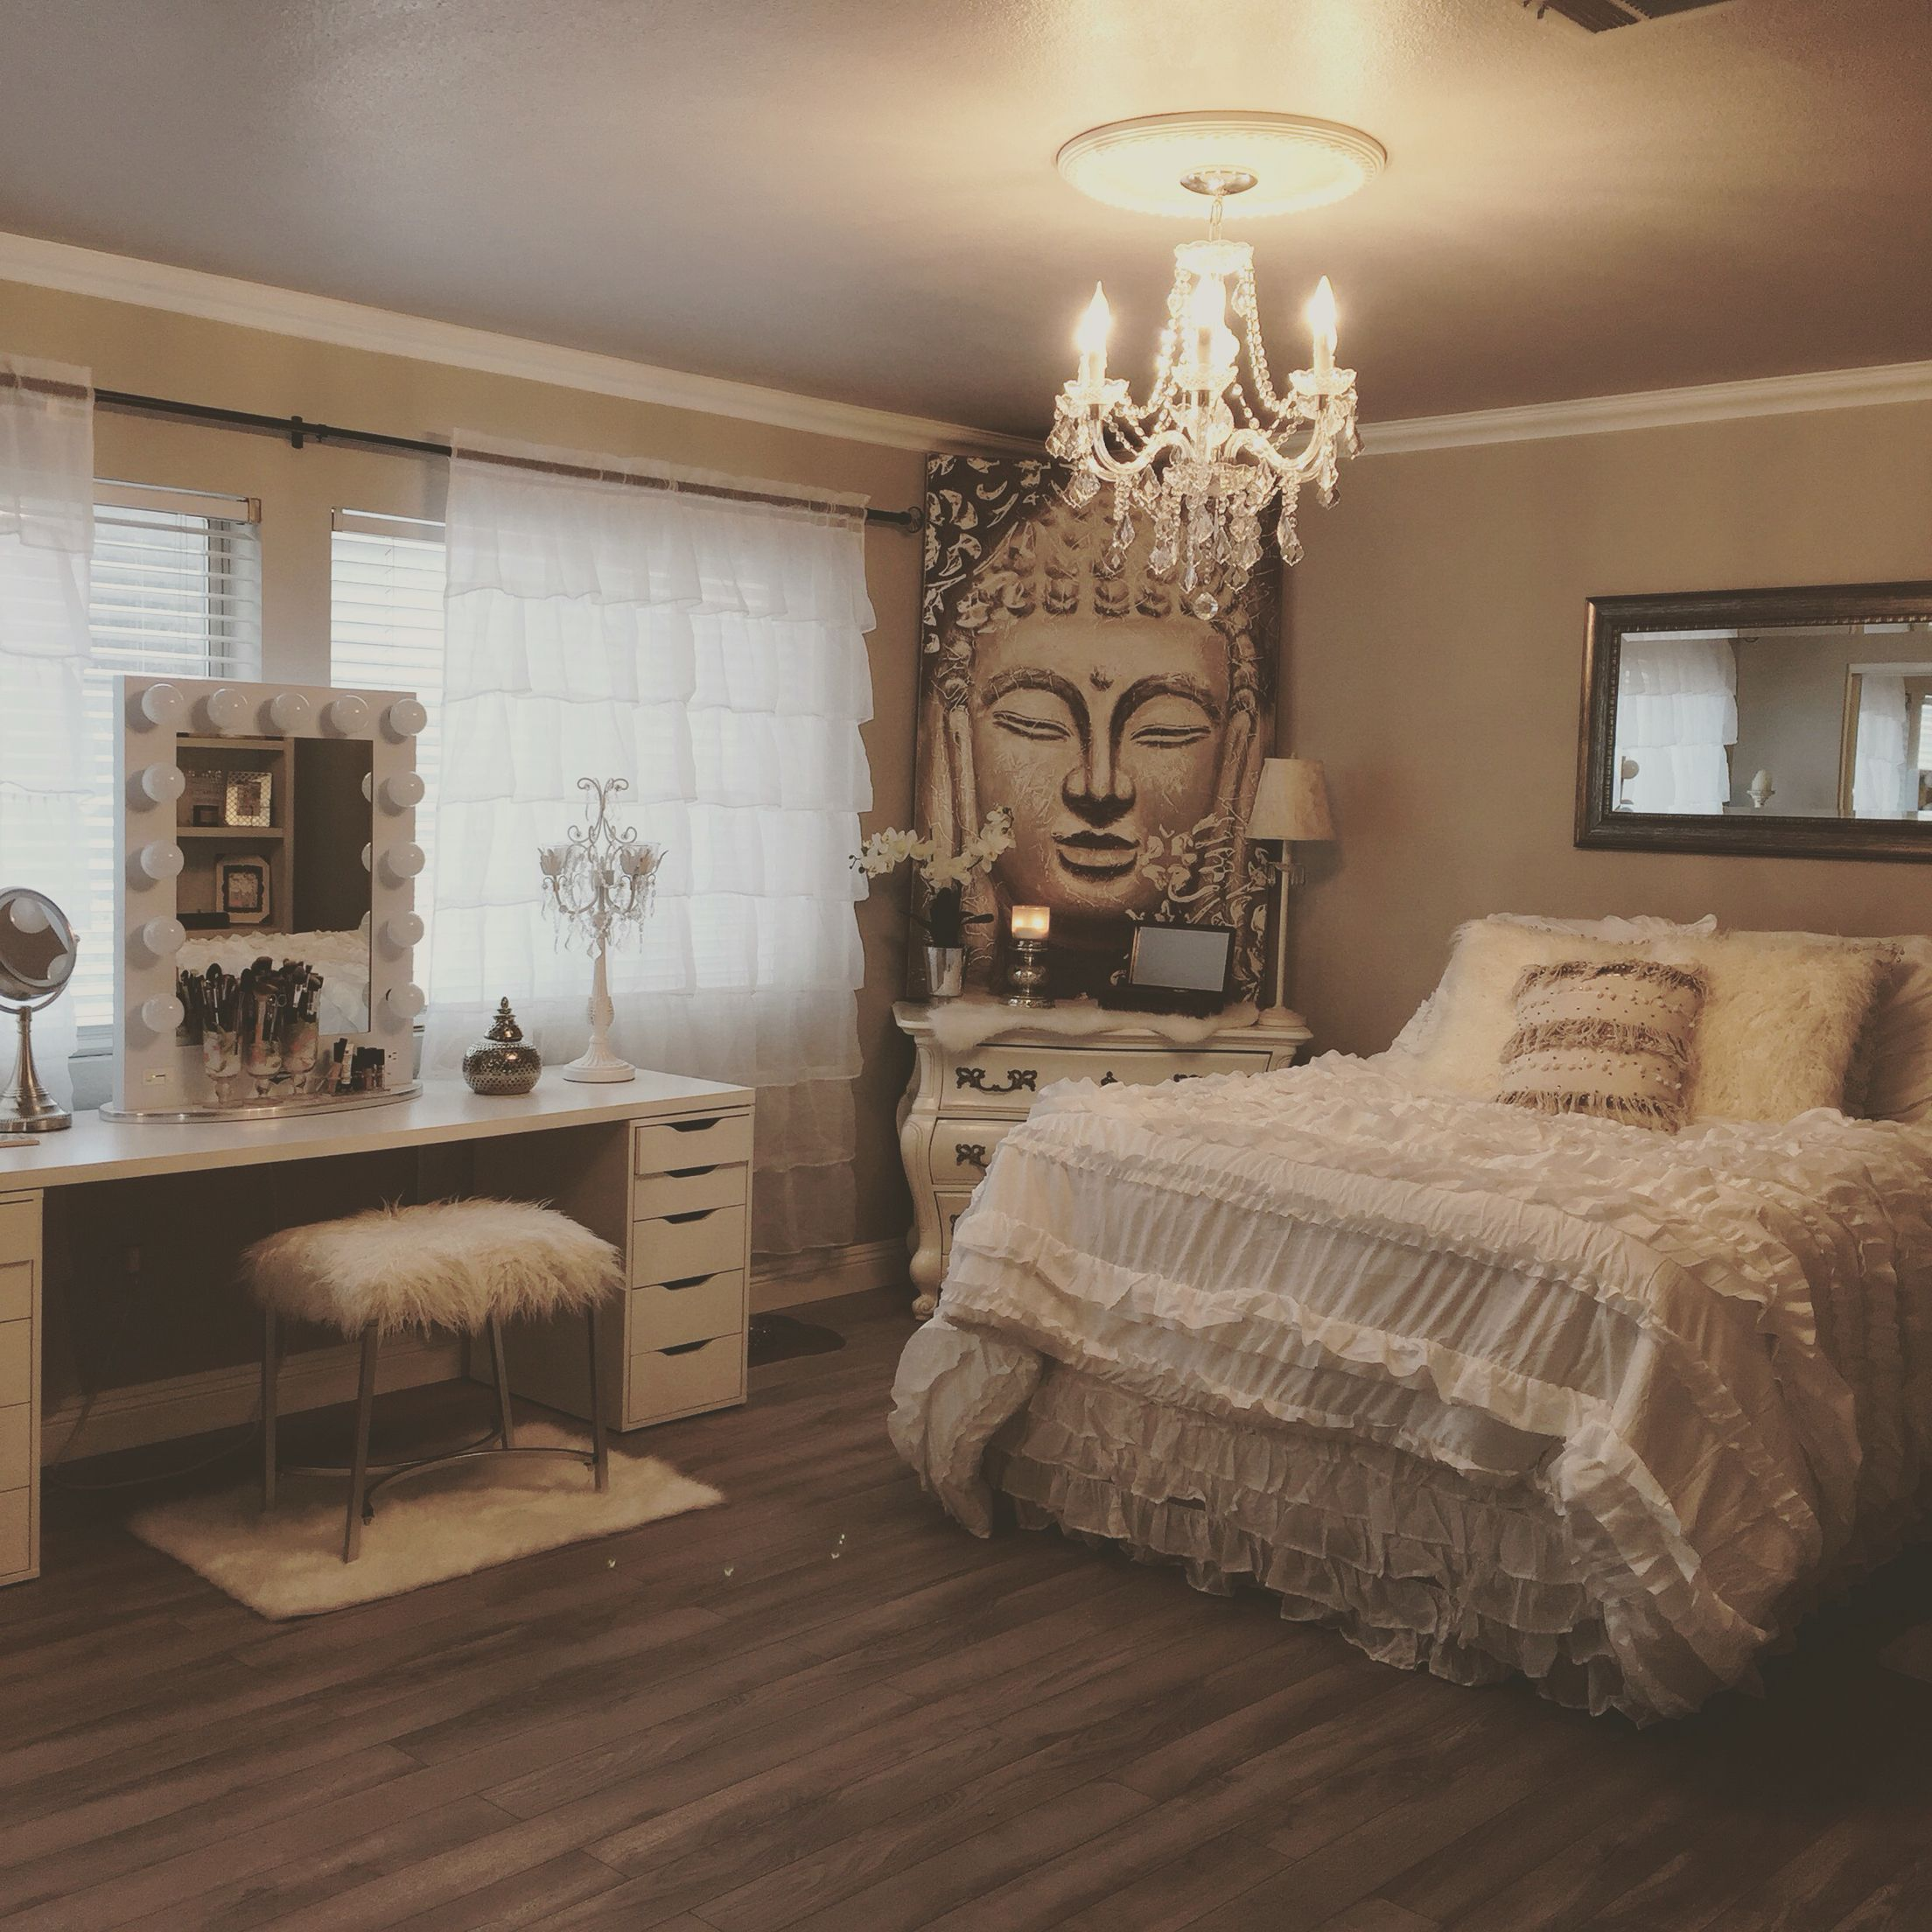 Shabby chic meets zen glam my new bedroom pinterest for Chic bedroom ideas women